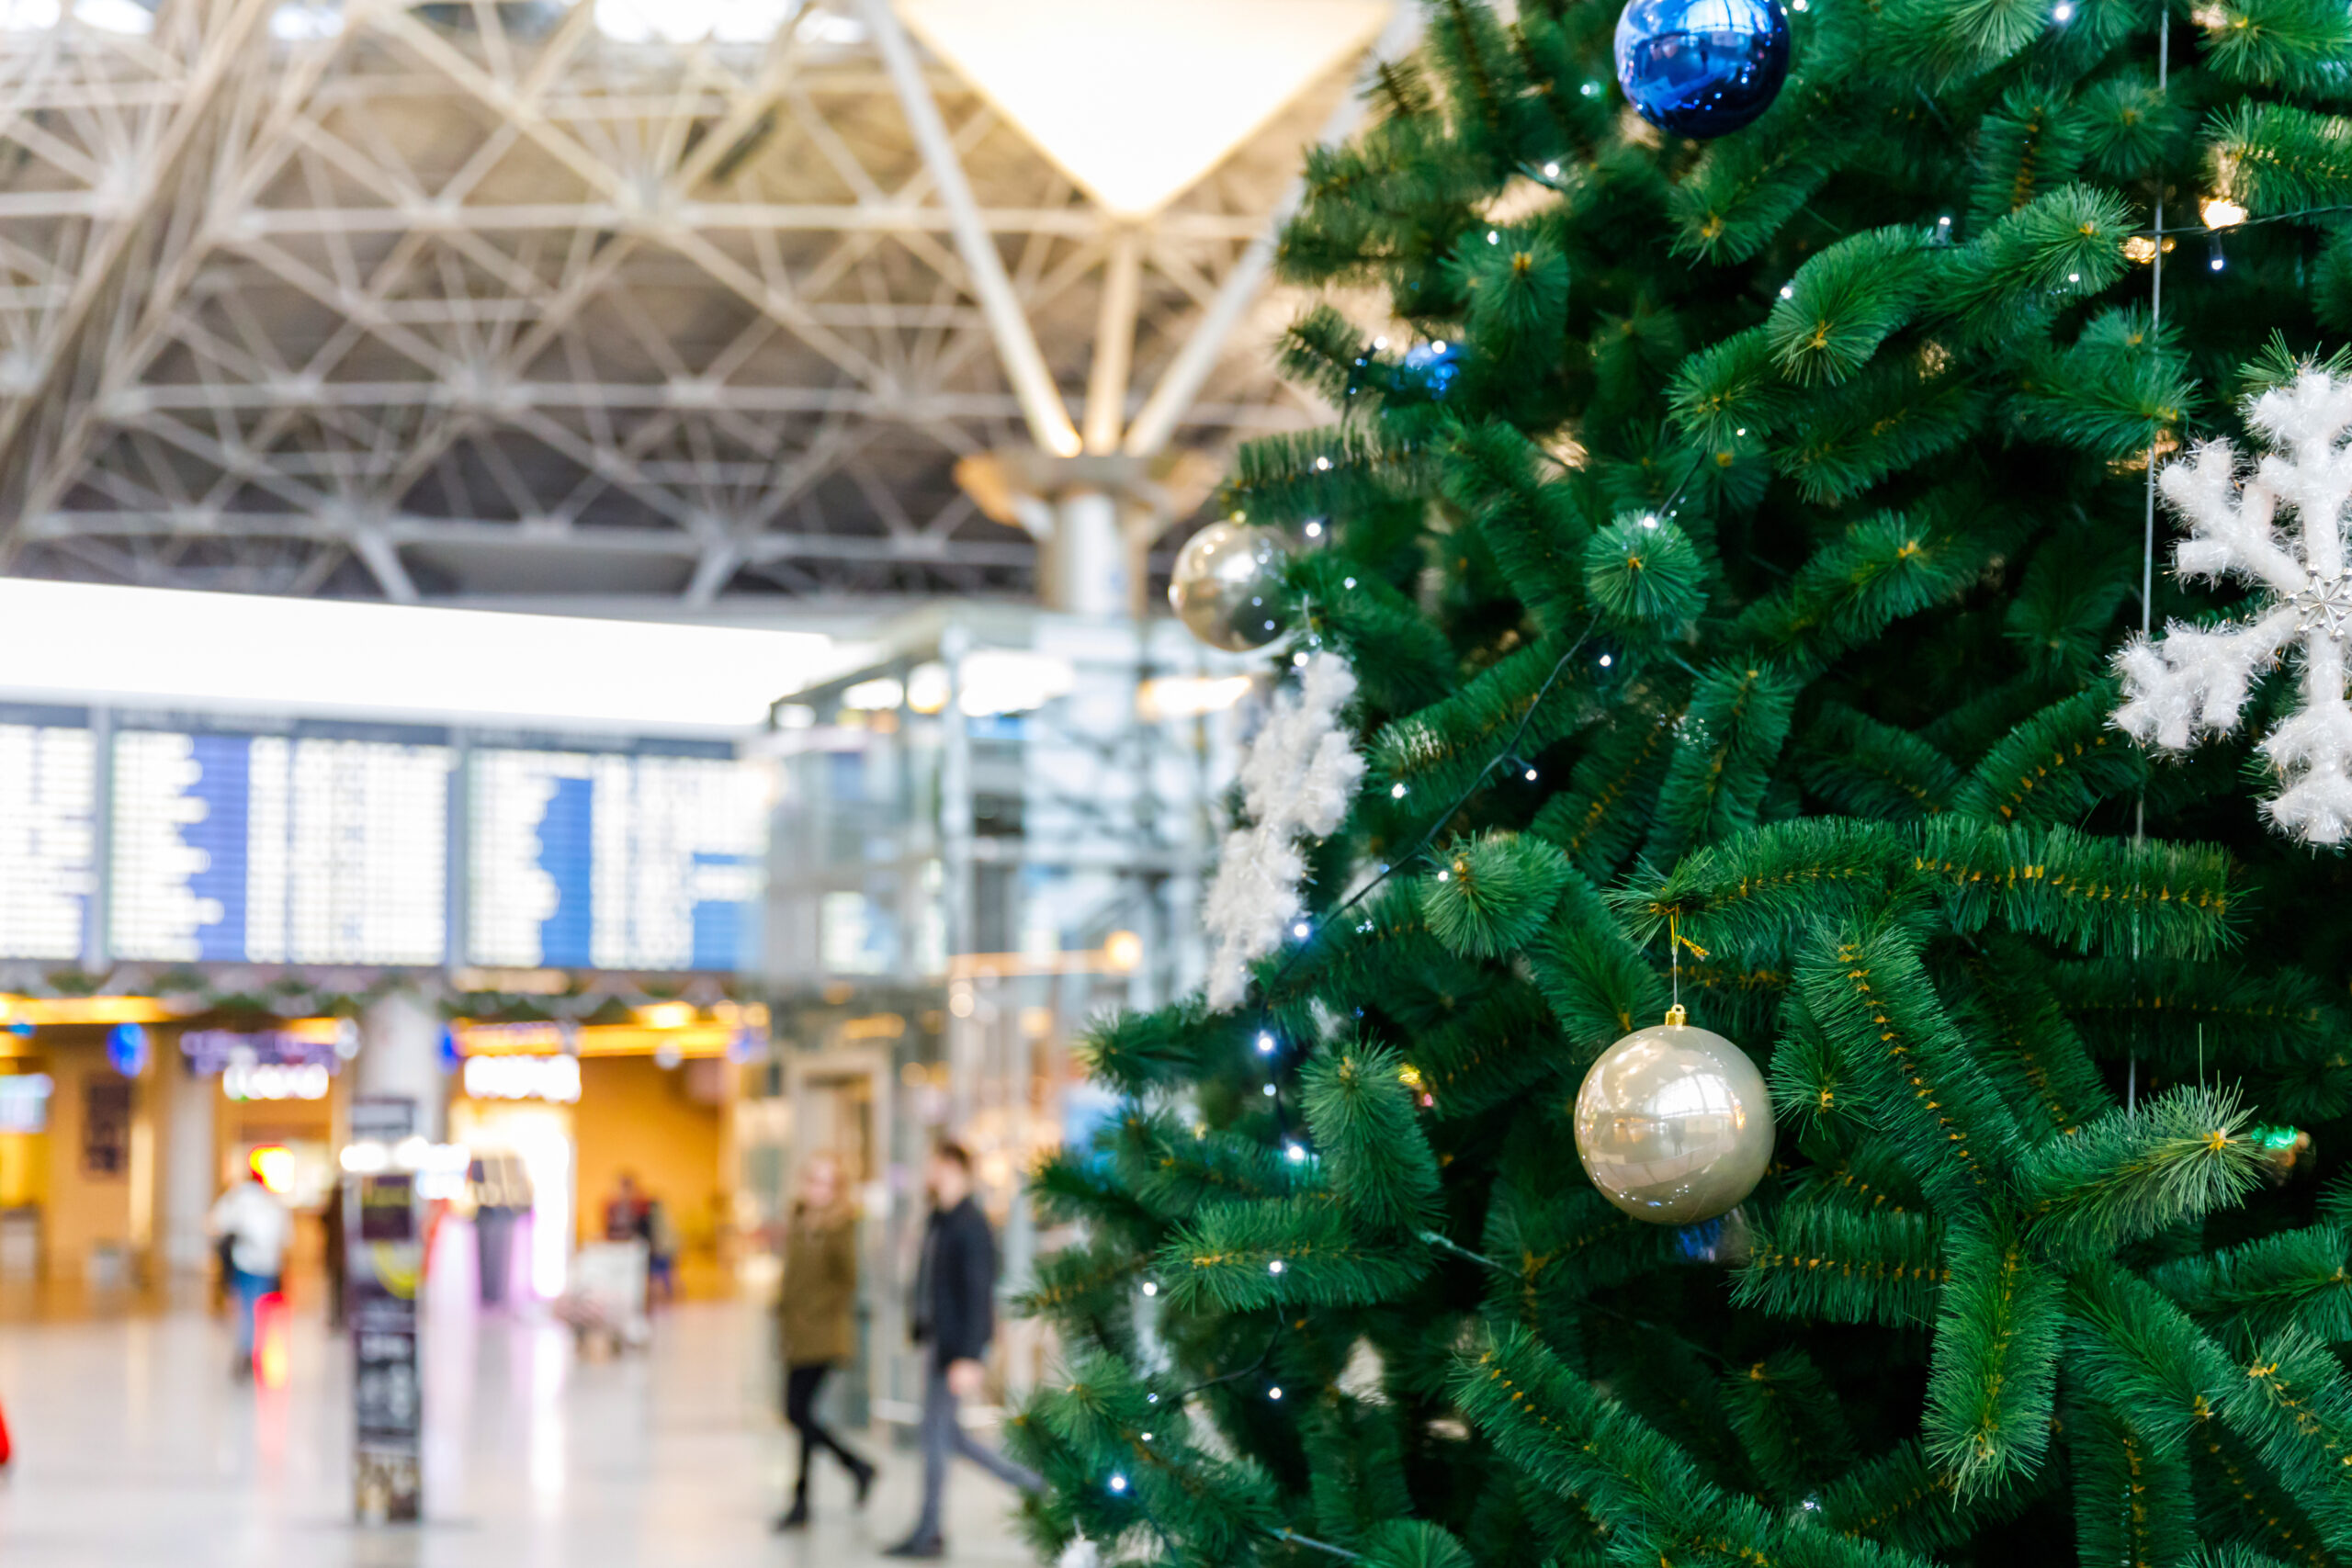 Best Flights From Ny On Christmas 2021 The Best And Worst Days To Fly For Christmas 2020 Airfarewatchdog Blog